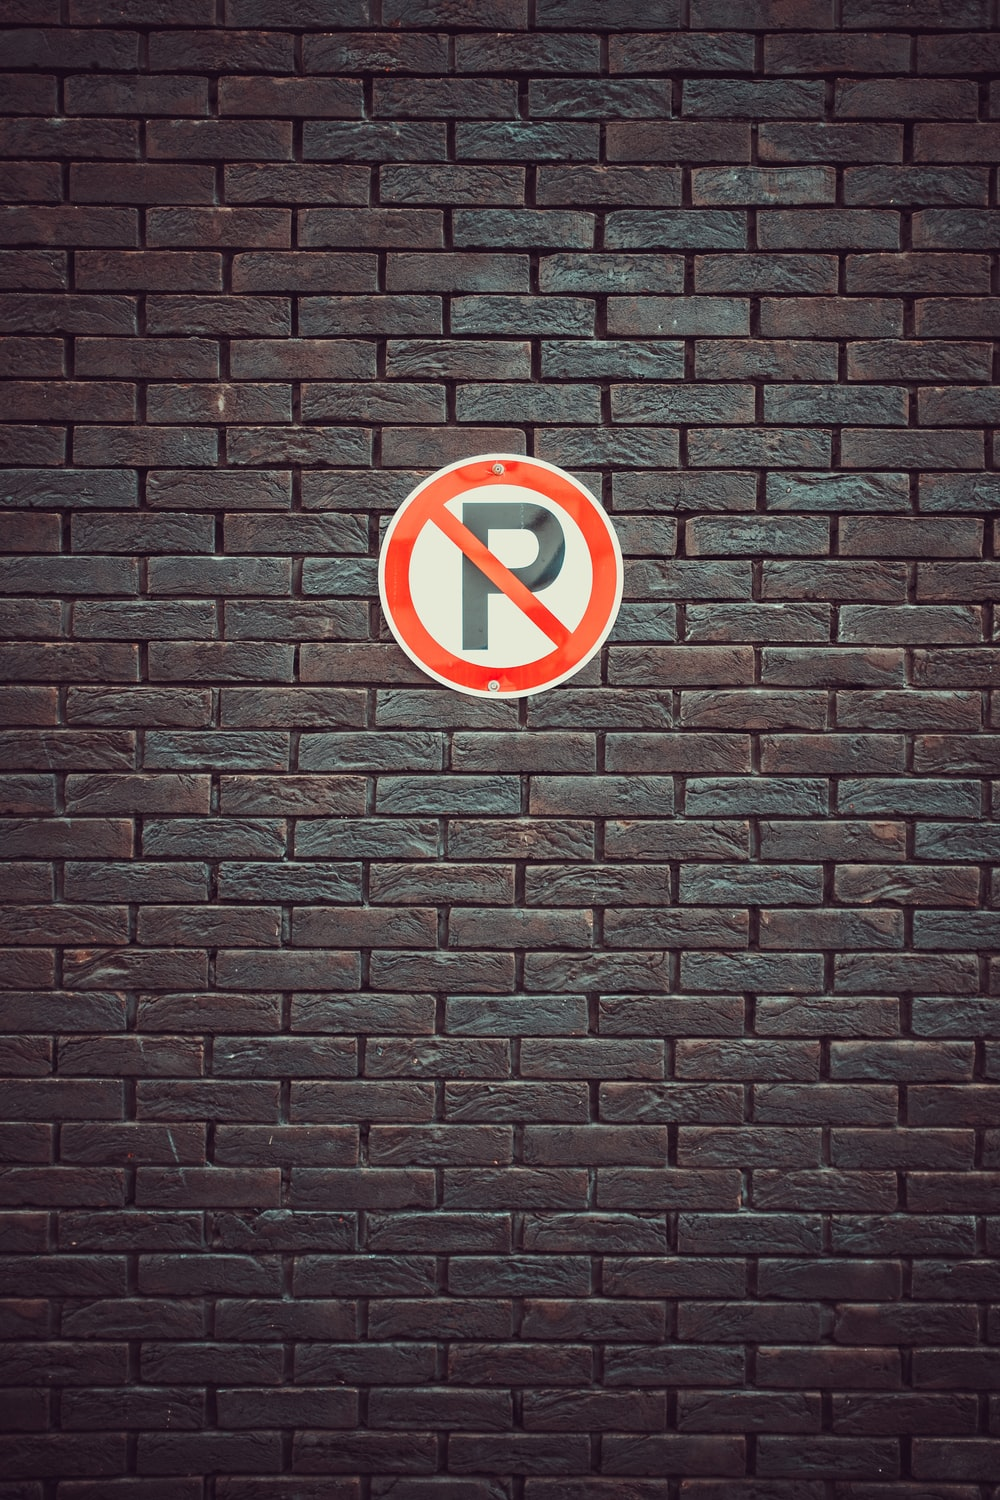 No parking signage on wall